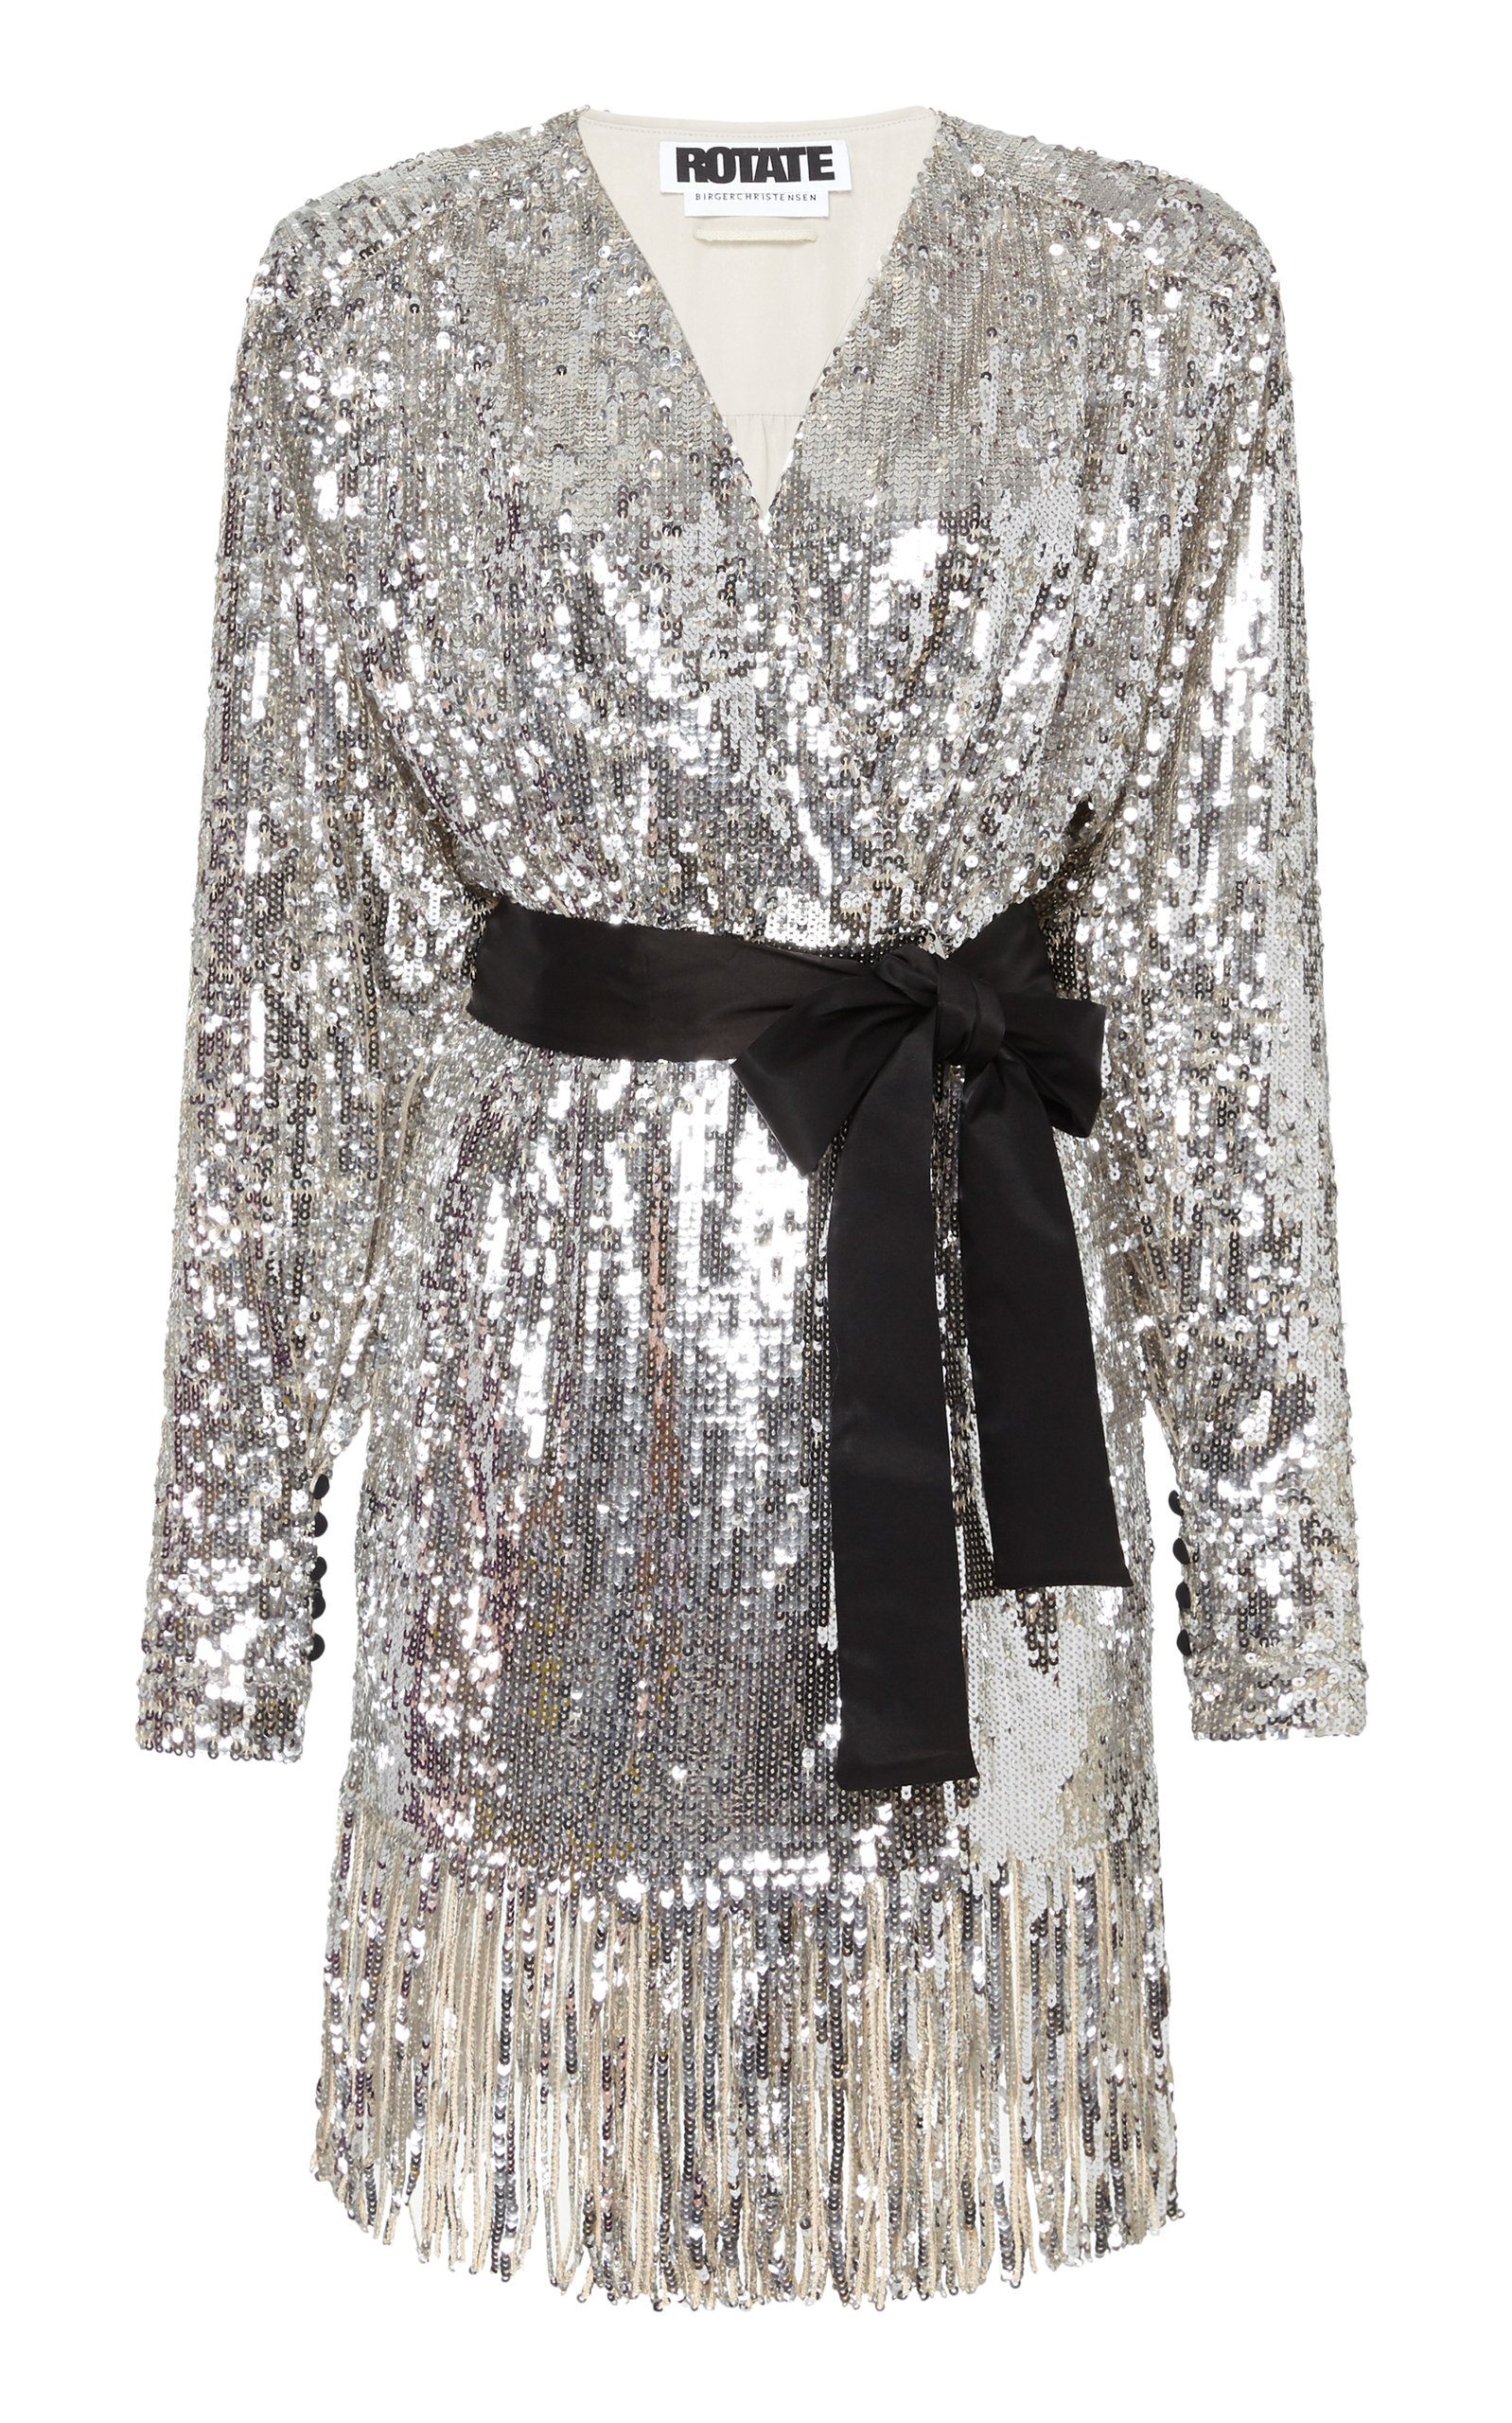 Buy ROTATE Samantha Sequined Fringe Dress online, shop ROTATE at the best price